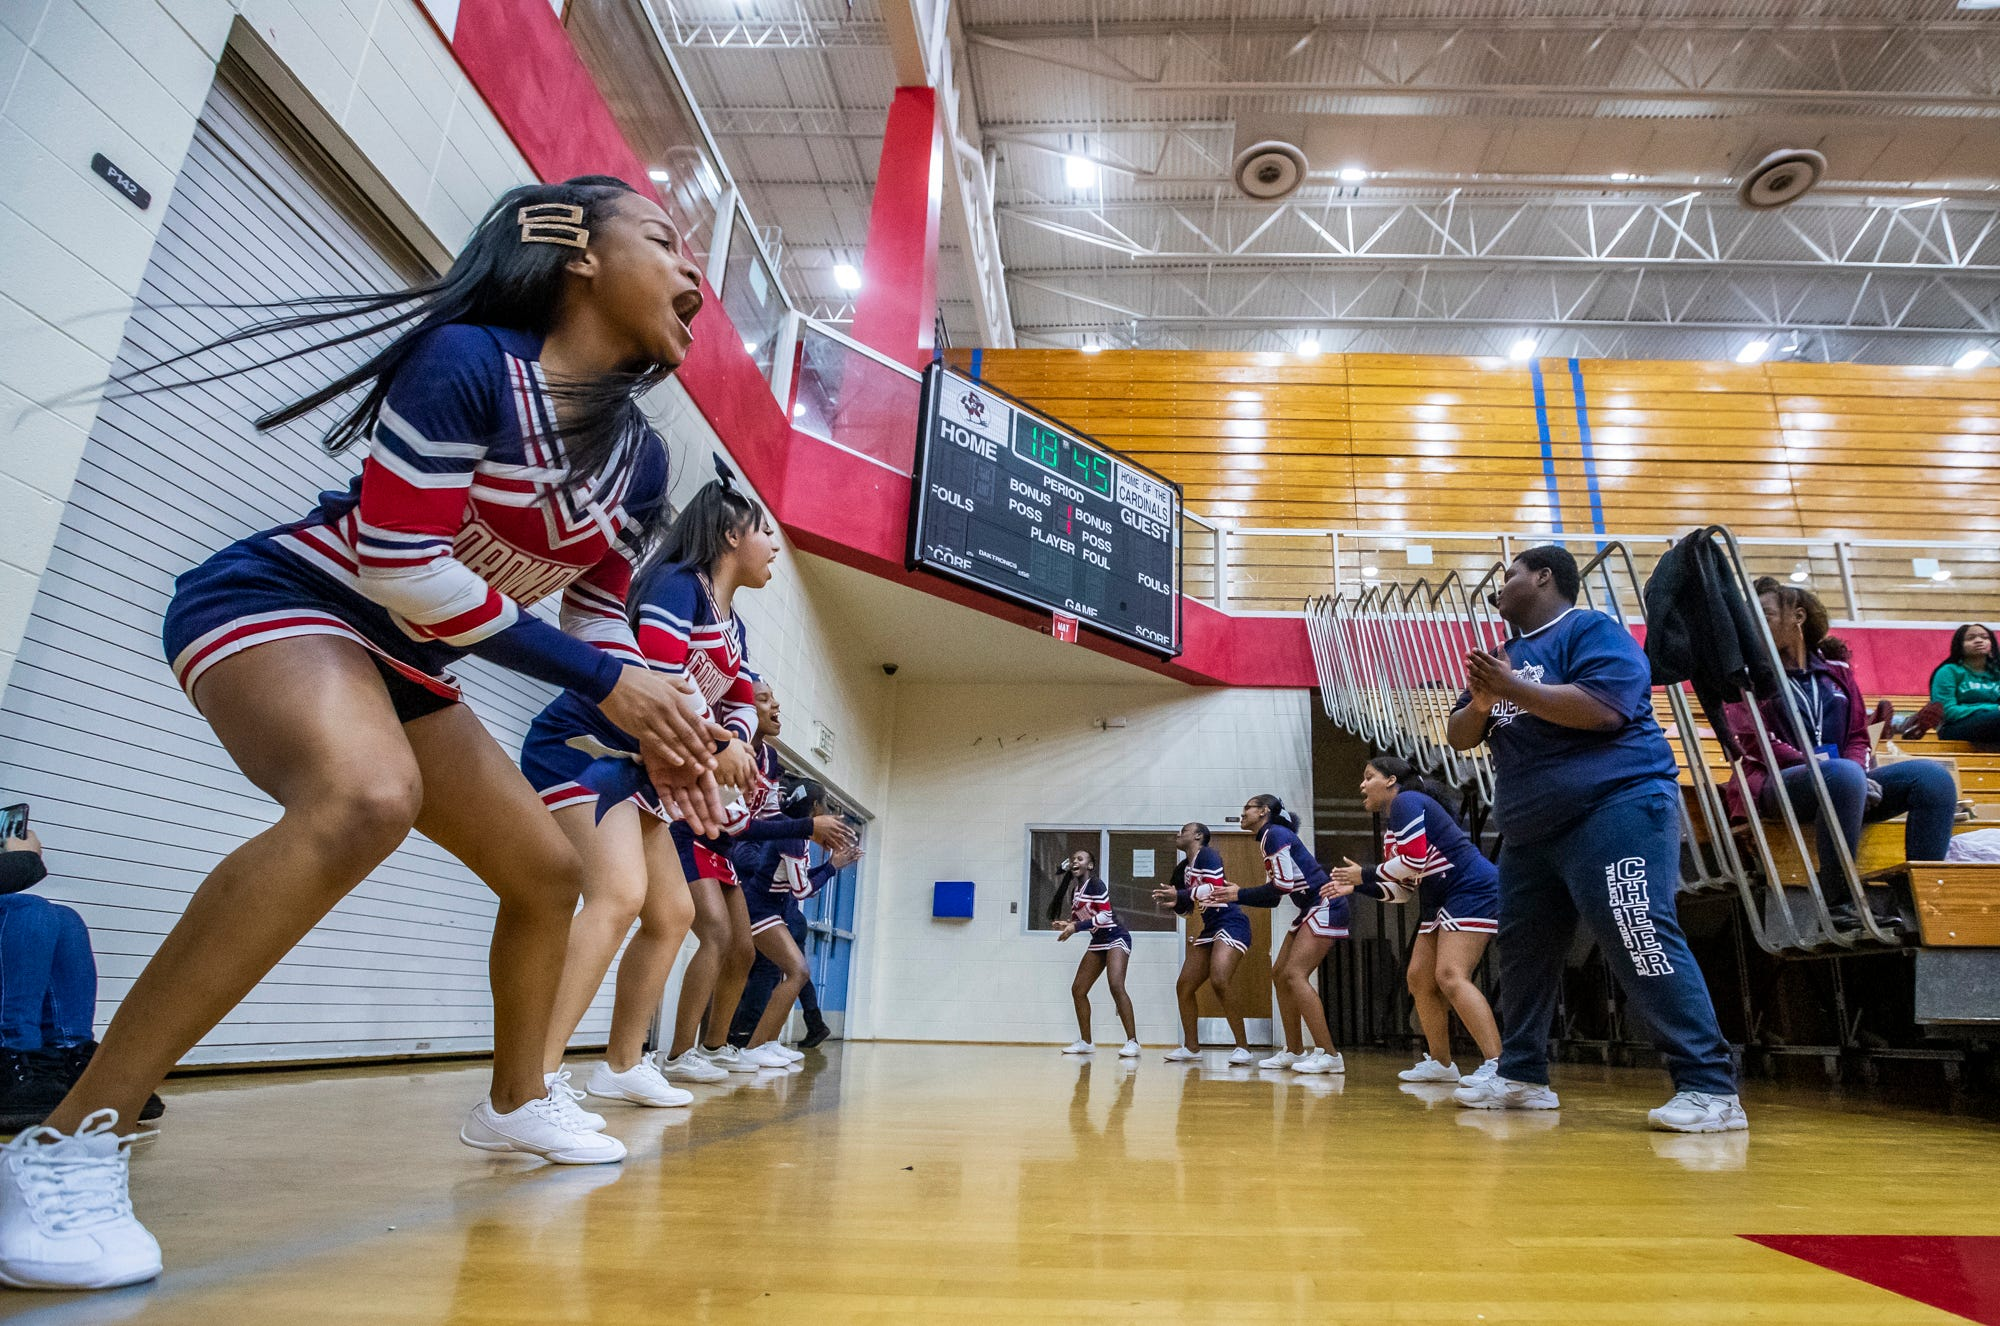 Ashanti Bell (left) and the rest of the East Chicago cheerleaders welcome the varsity boys team to the court for the game against Hammond at East Chicago Central High School's John A. Baratto Athletic Center on Tuesday, Jan. 21, 2020.